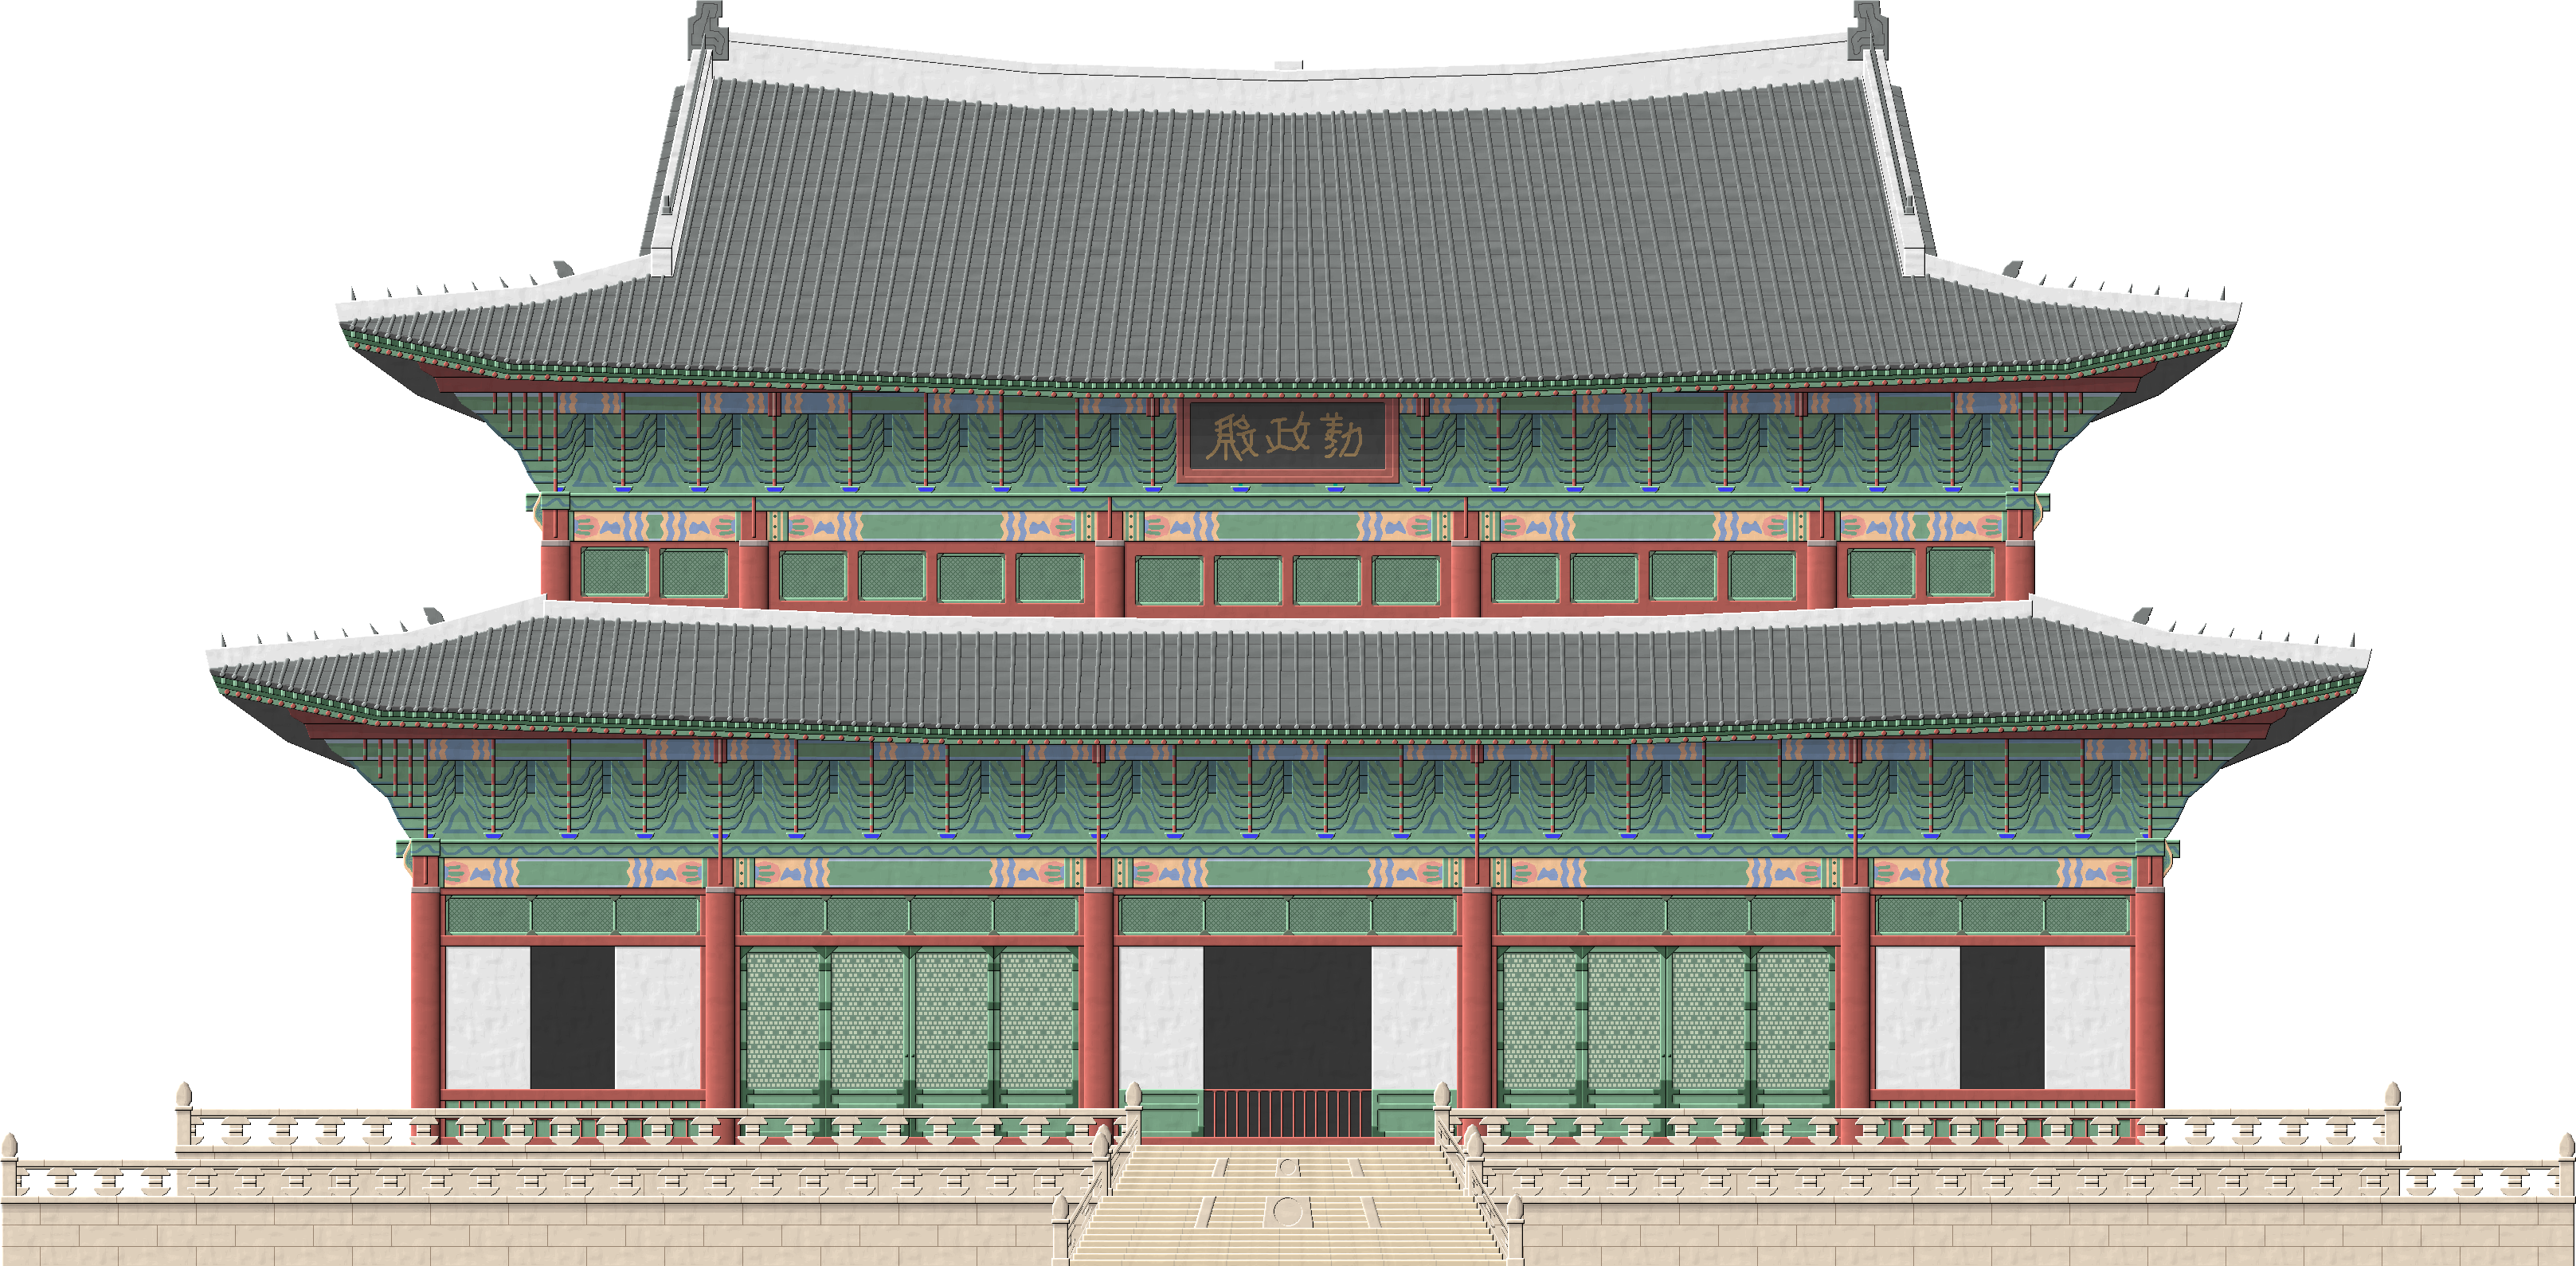 Asian house clipart vector transparent library Changdeokgung Palace by Herbertrocha on DeviantArt, transparent ... vector transparent library